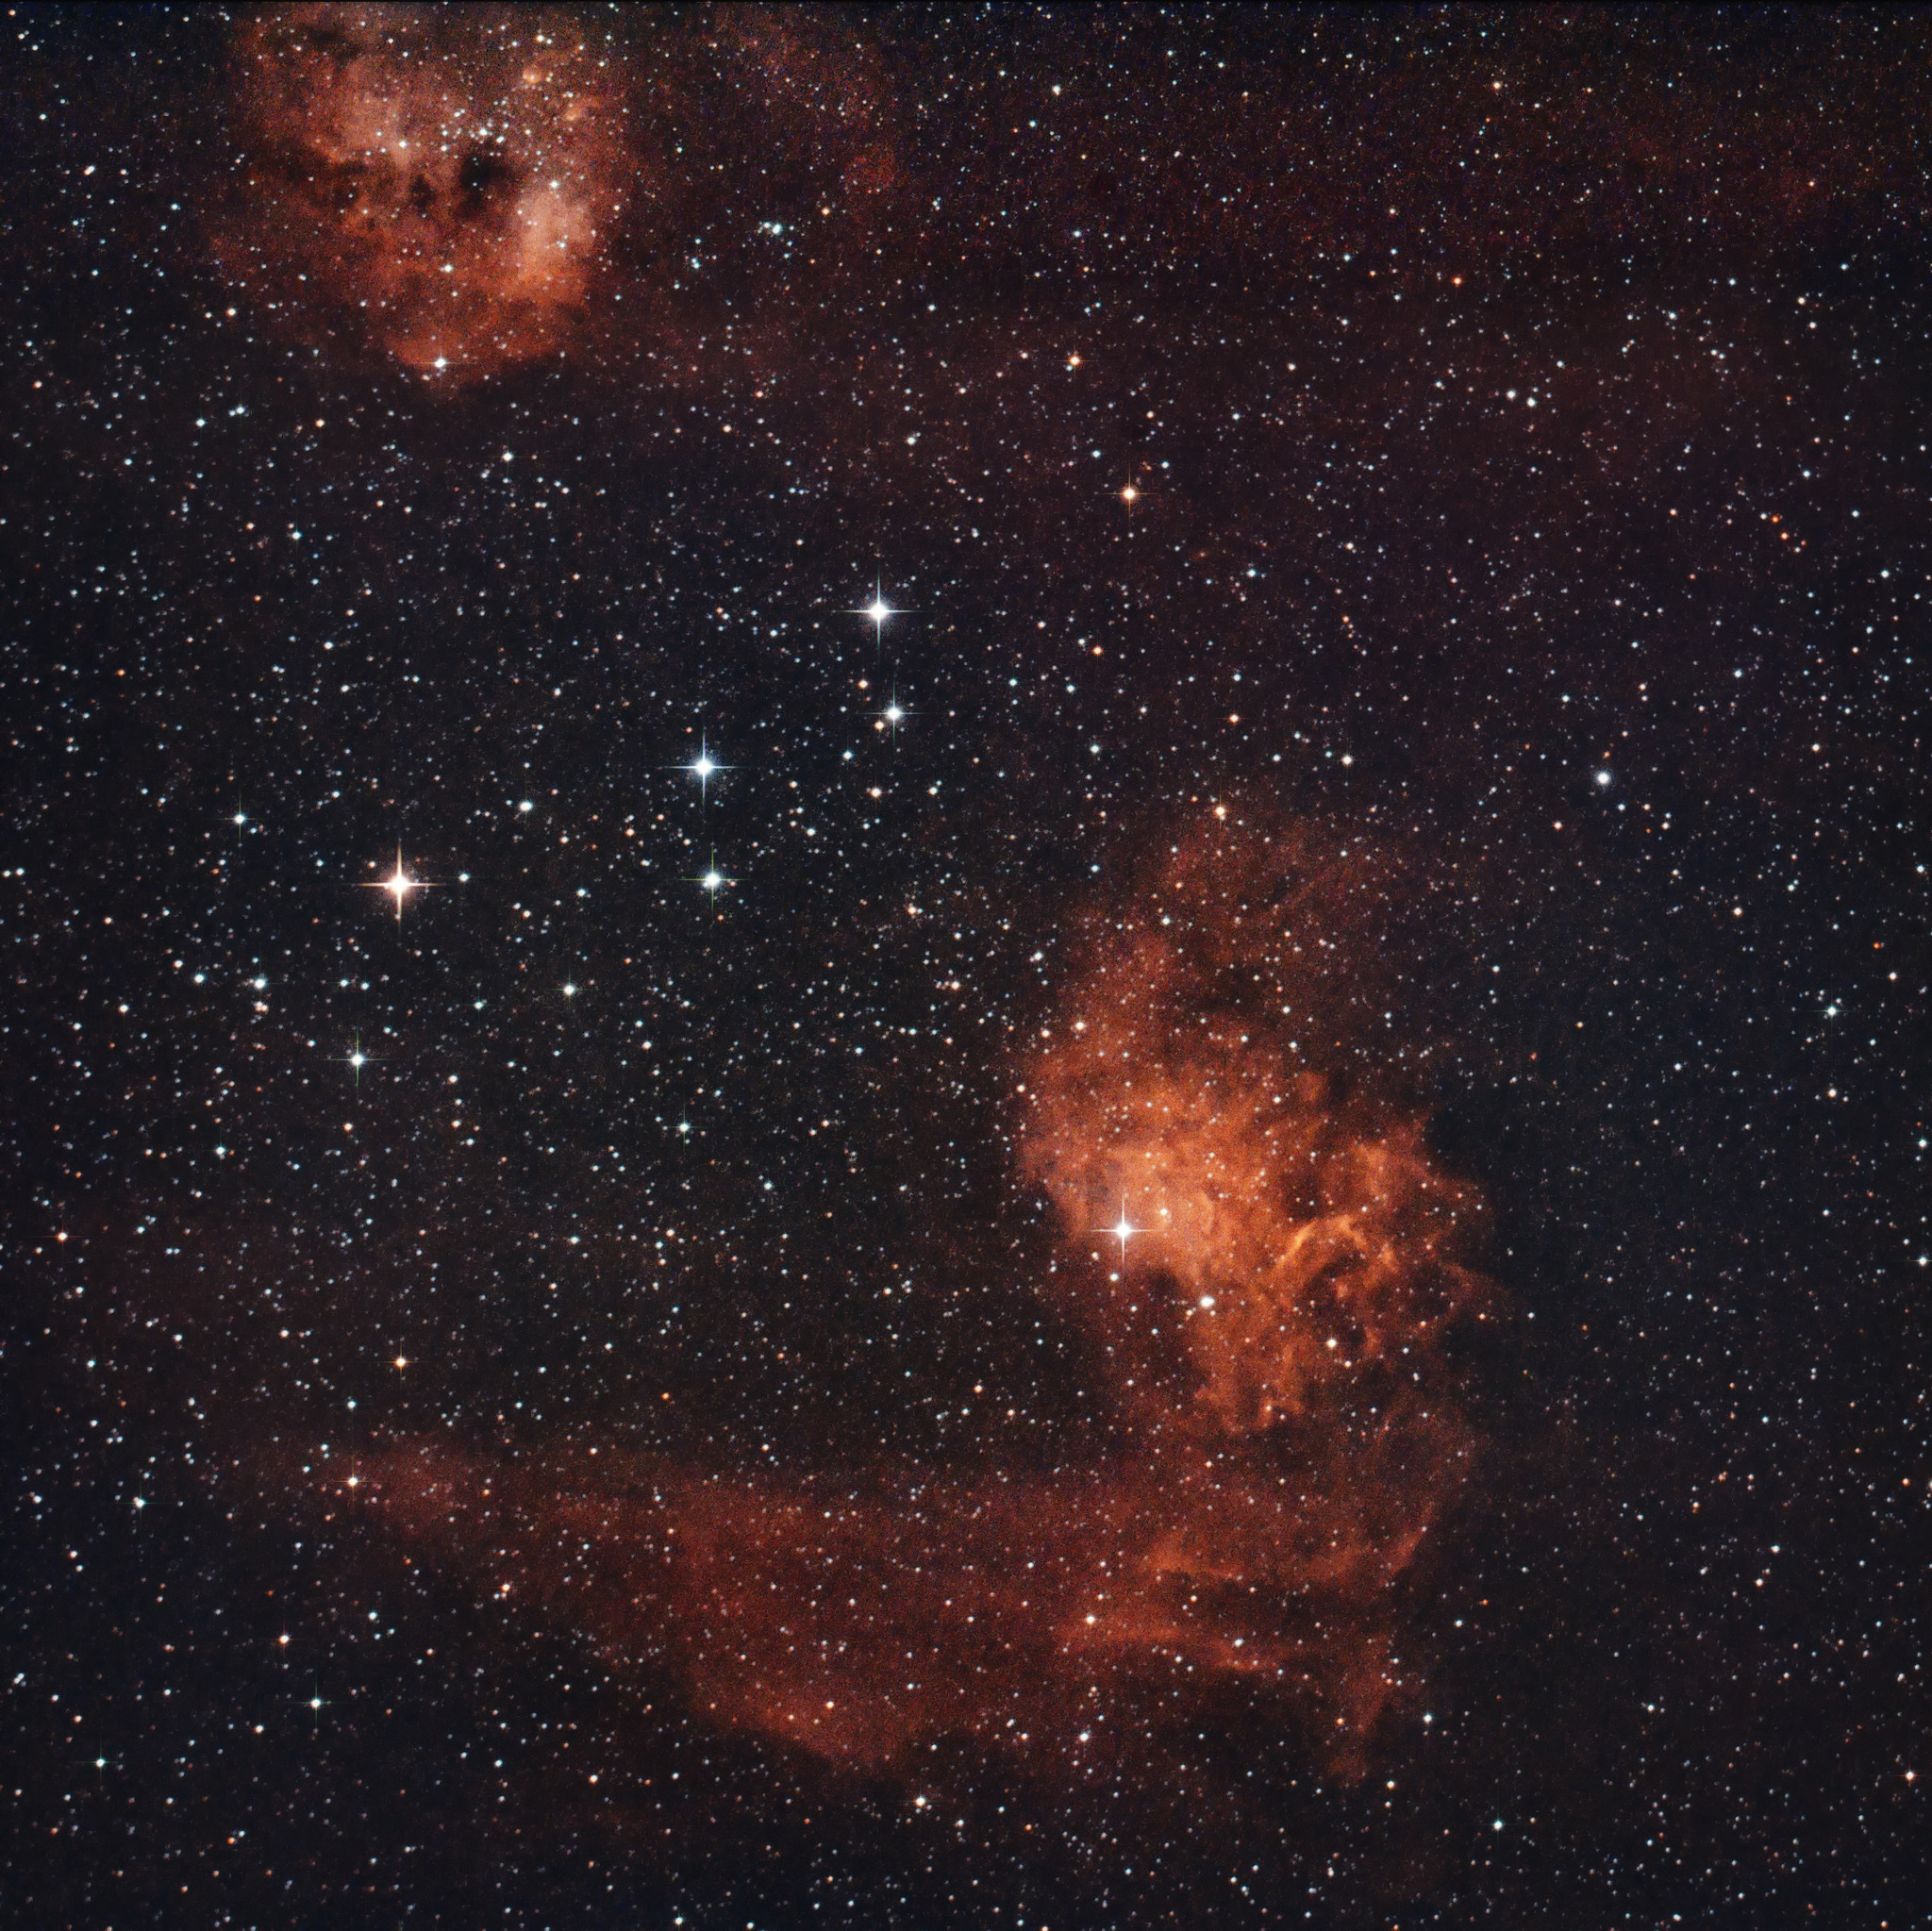 IC 405 (also known as the Flaming Star Nebula)